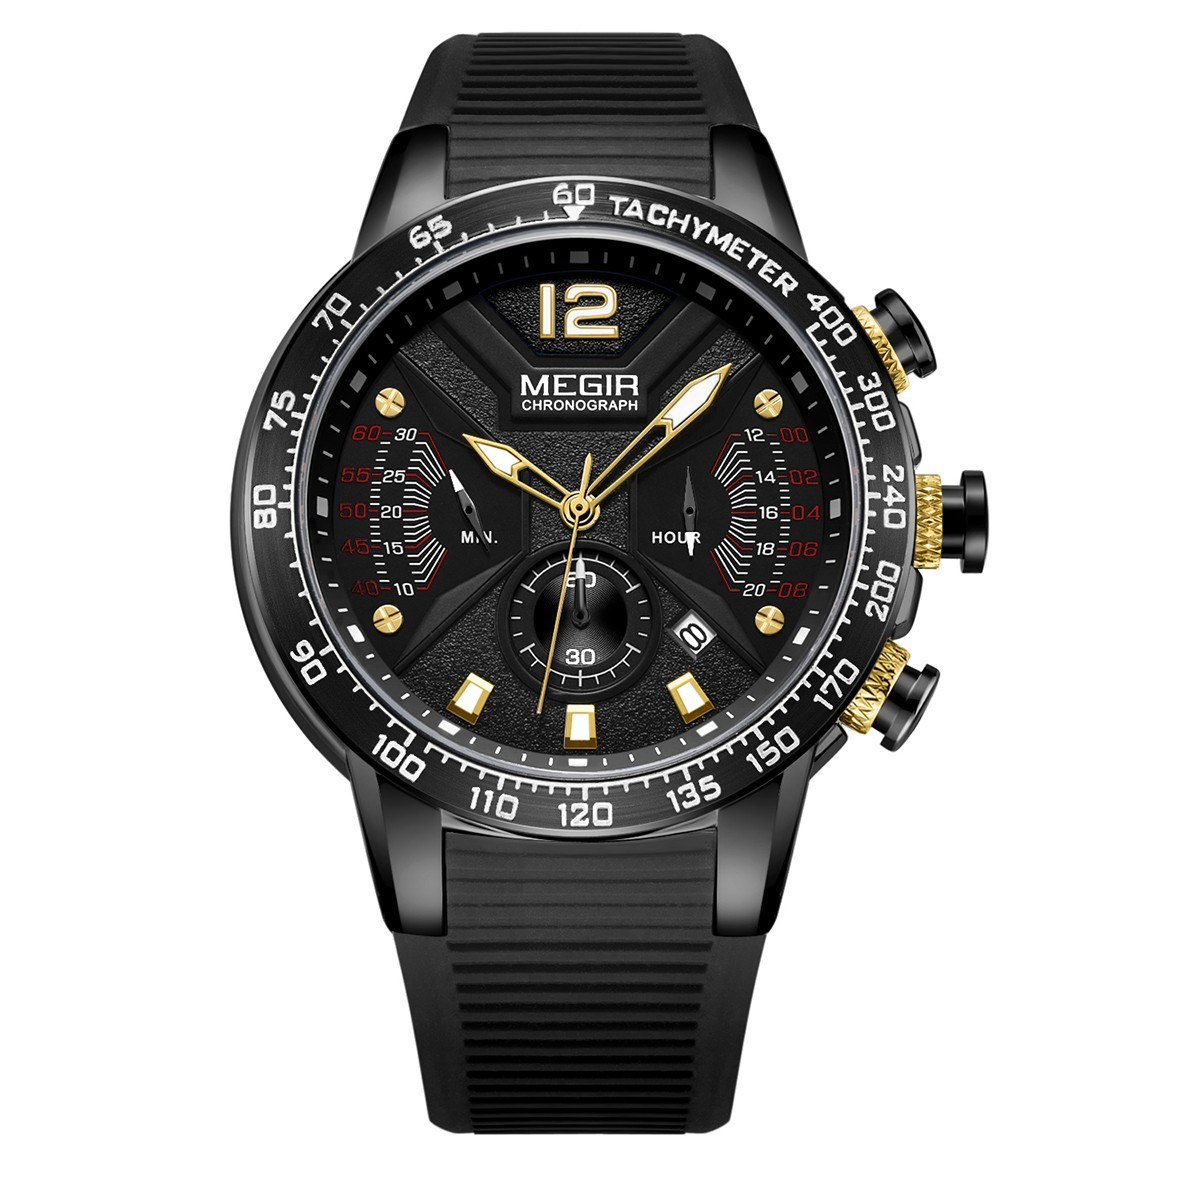 MEGIR 2106 Military Army Quartz Men Watch 3ATM Waterproof Luminous Sport Clock Wrist Watch with Chronograph Second Minute 24-Hours Sub-Dials Calendar Indicator Luxury Wristwatch for Male with Silicone Strap Band